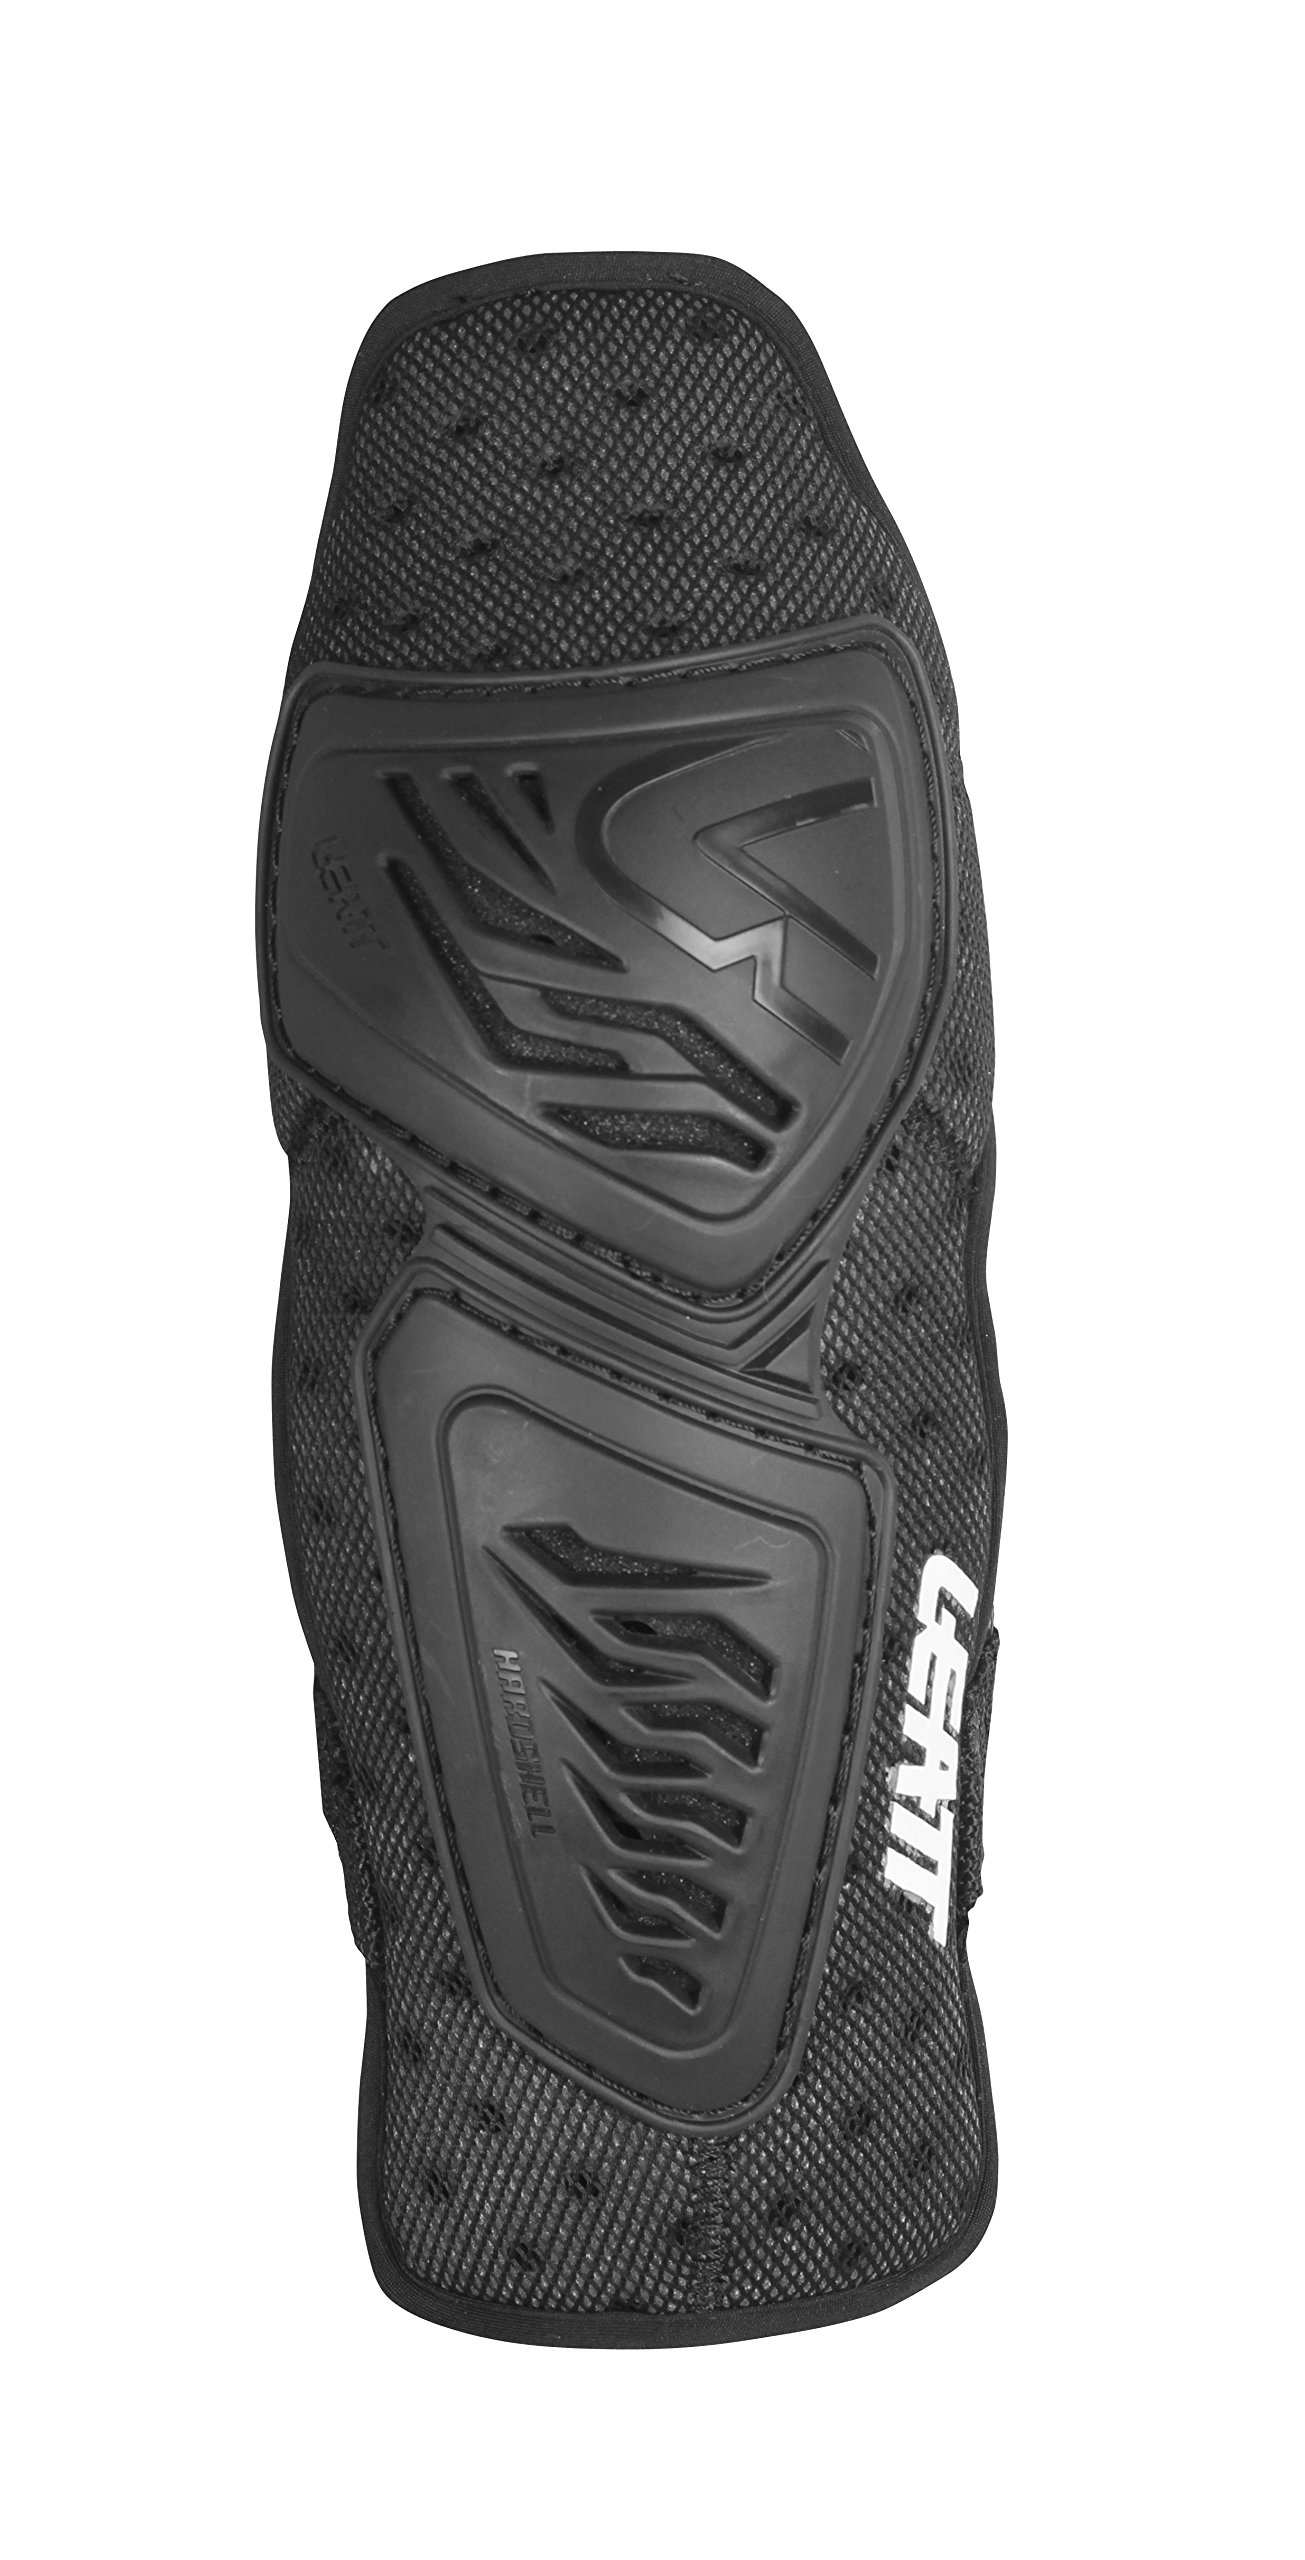 Leatt 3.0 Elbow Guard (Black, Large/X-Large)